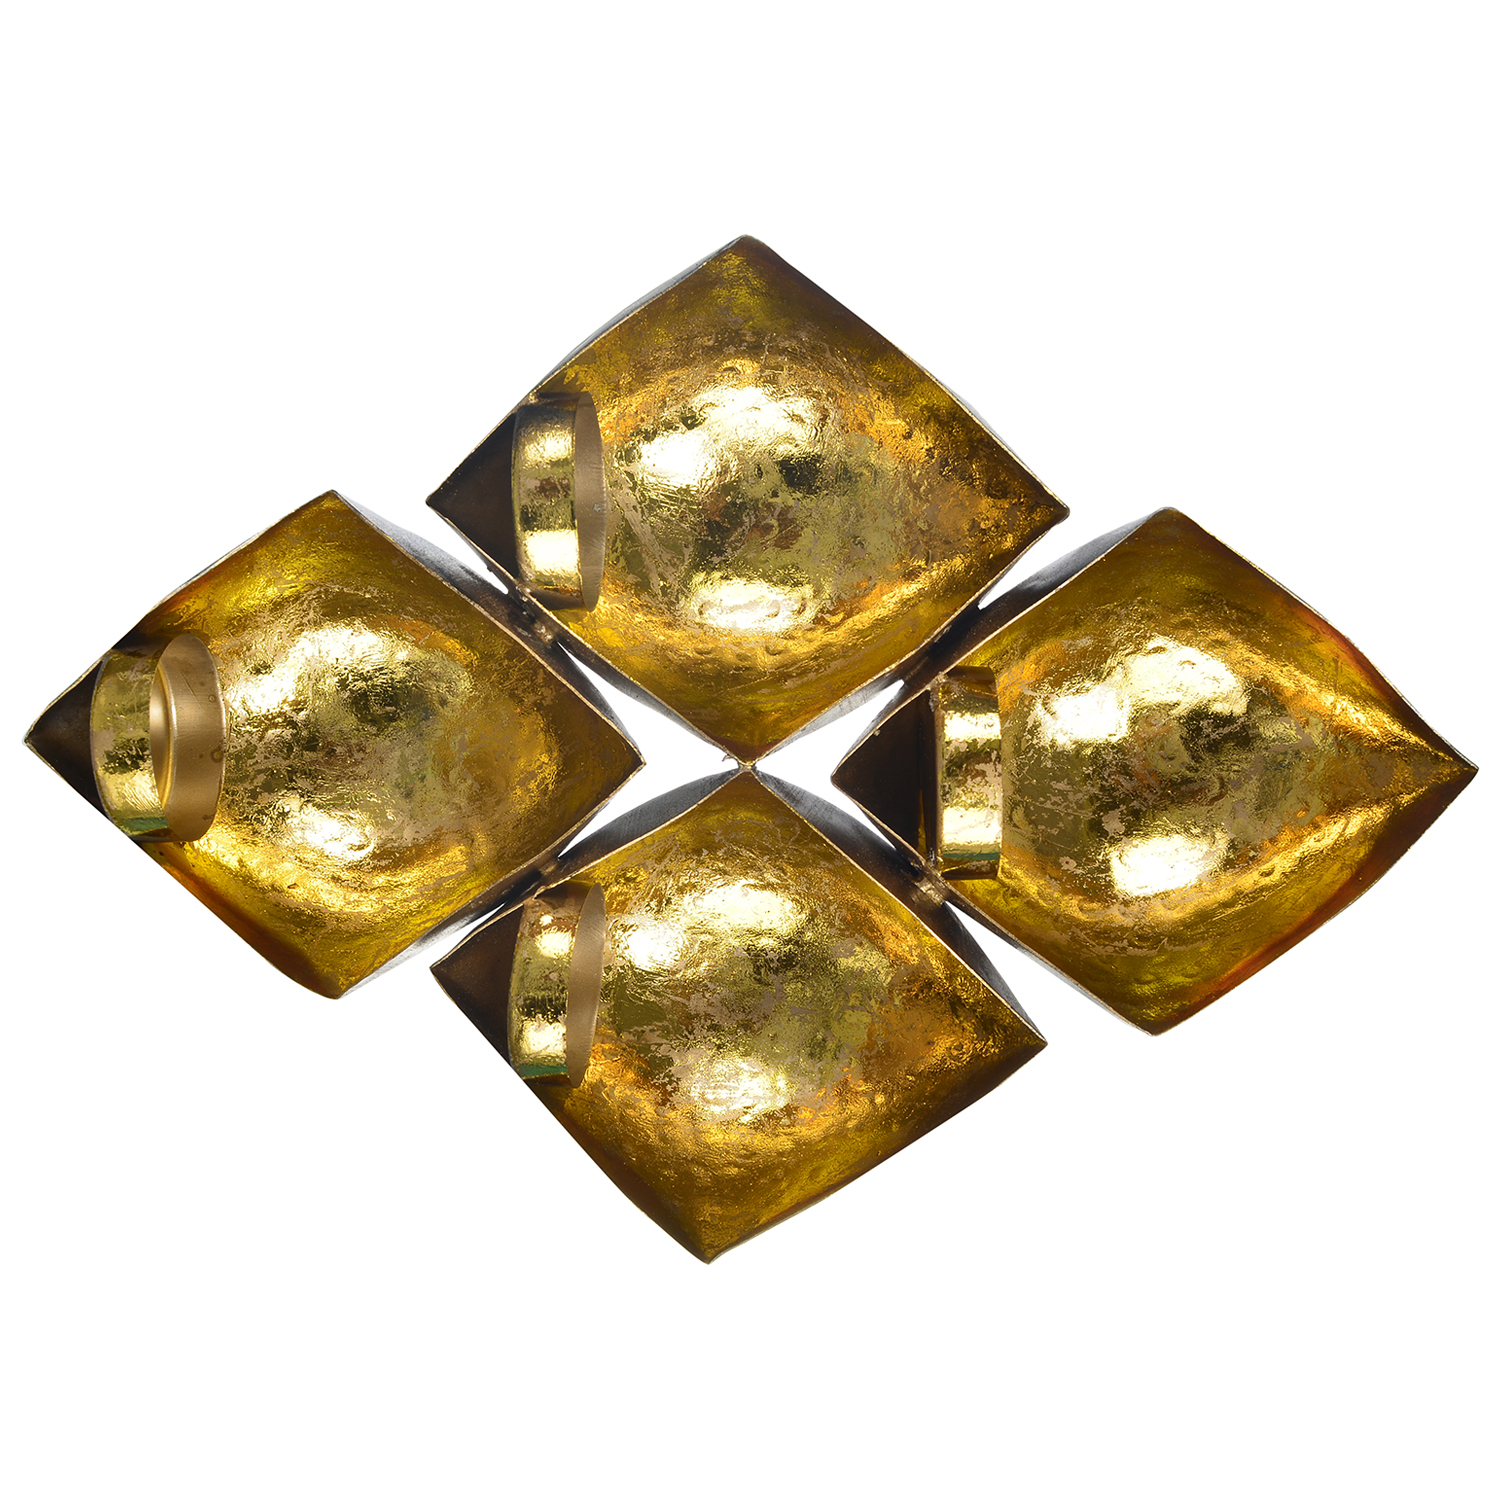 Set of 4 Tea Light Holder Indian Home Decor